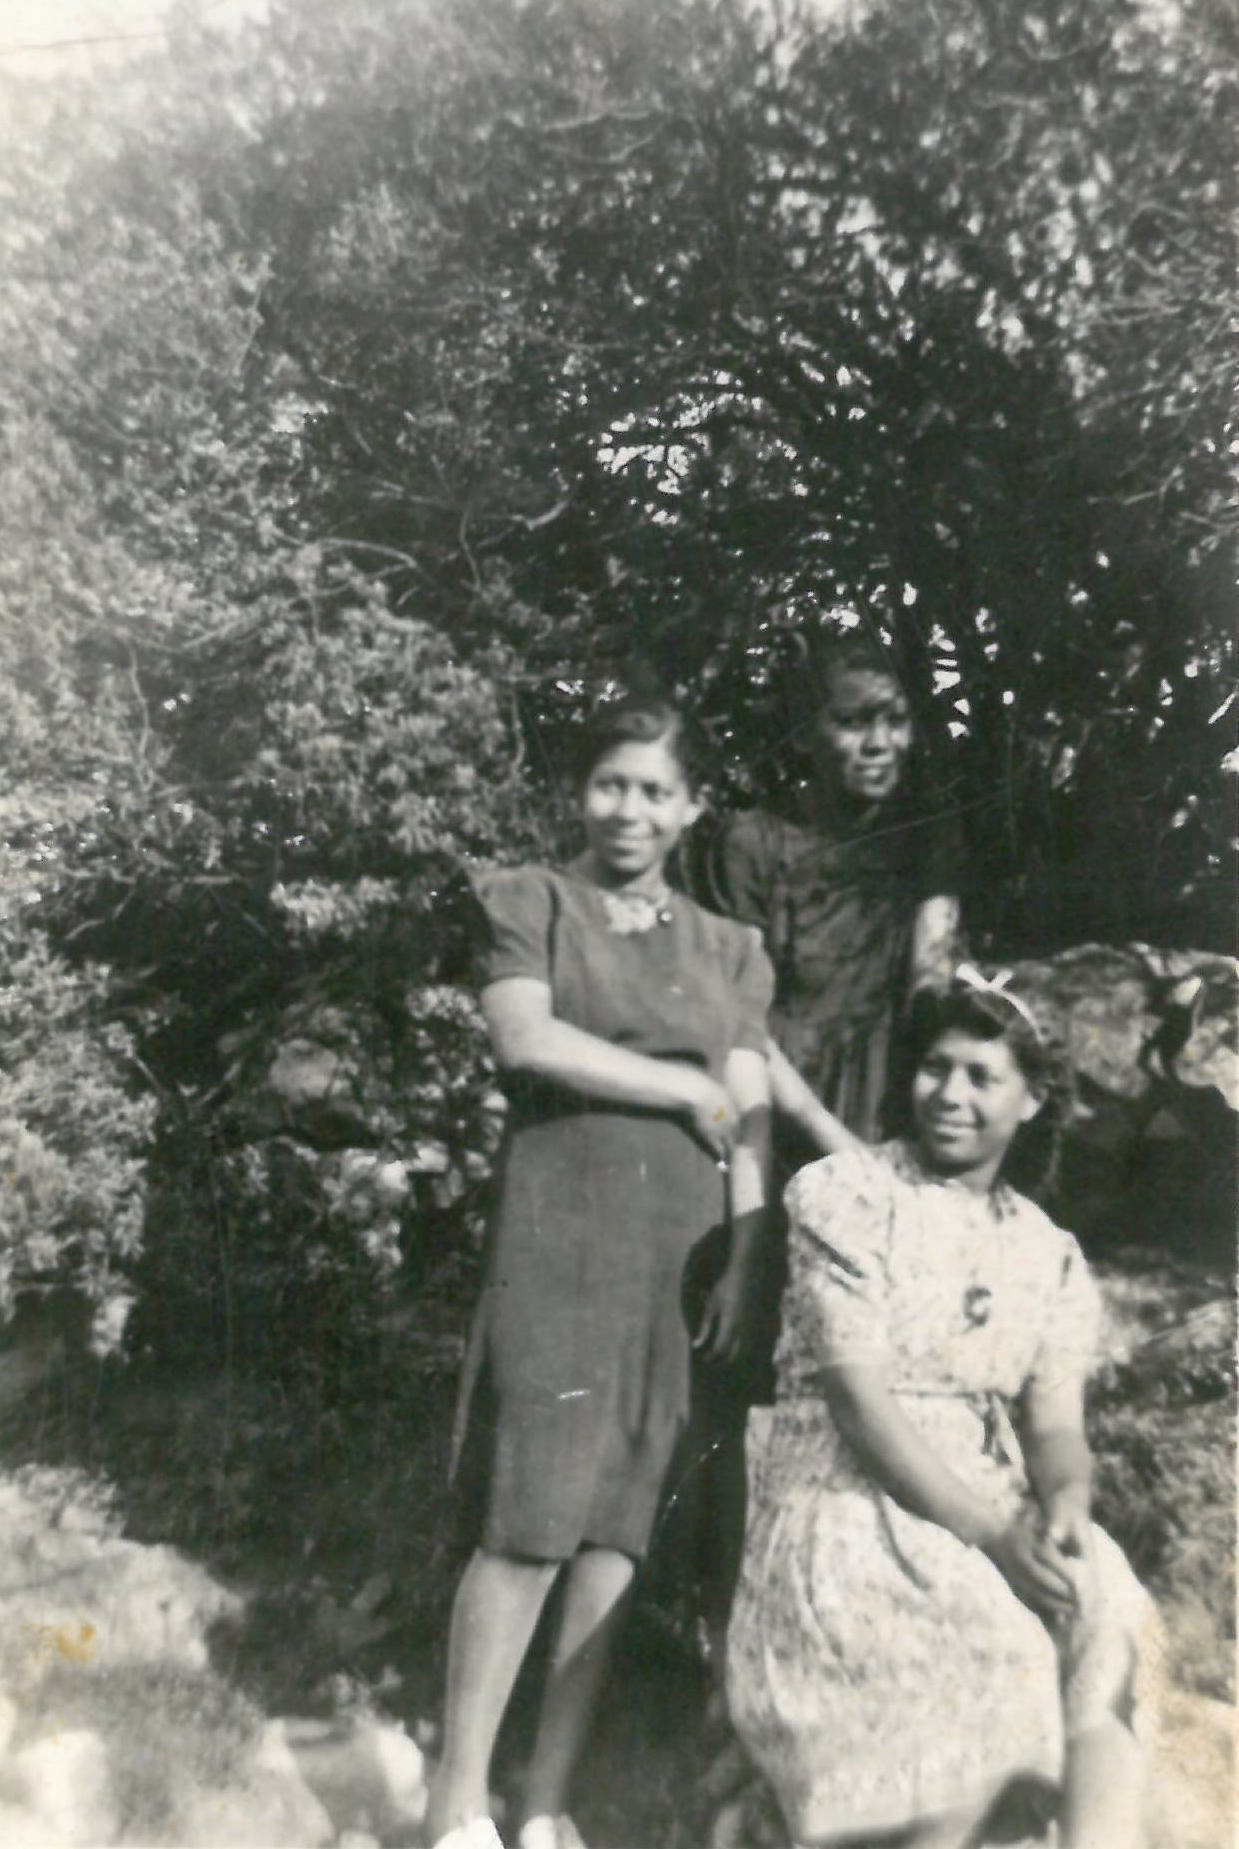 Old photograph of twins from family of twins